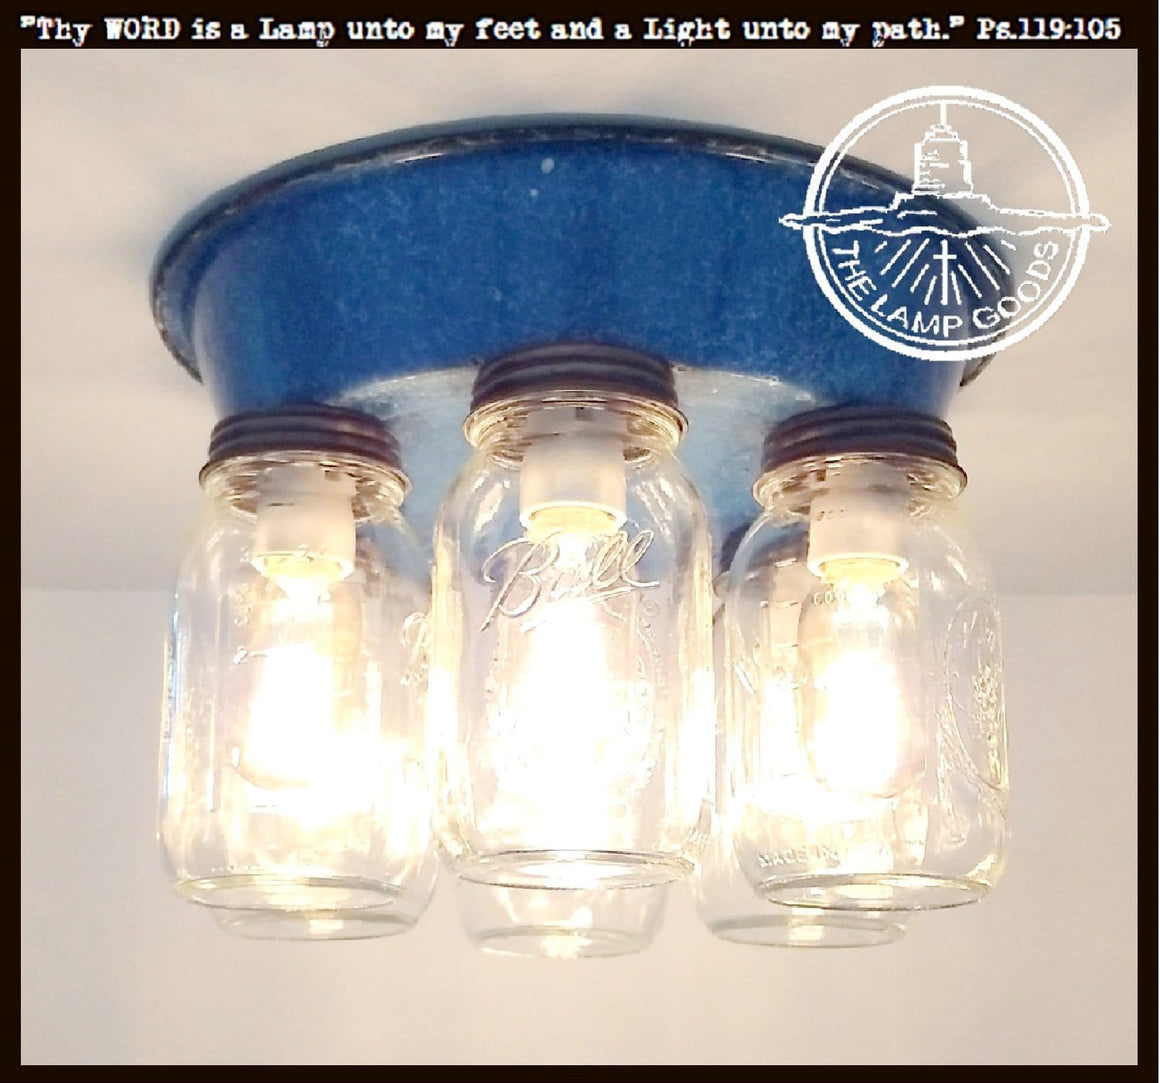 Vintage Blue Enamel Mason Jar Light - The Lamp Goods